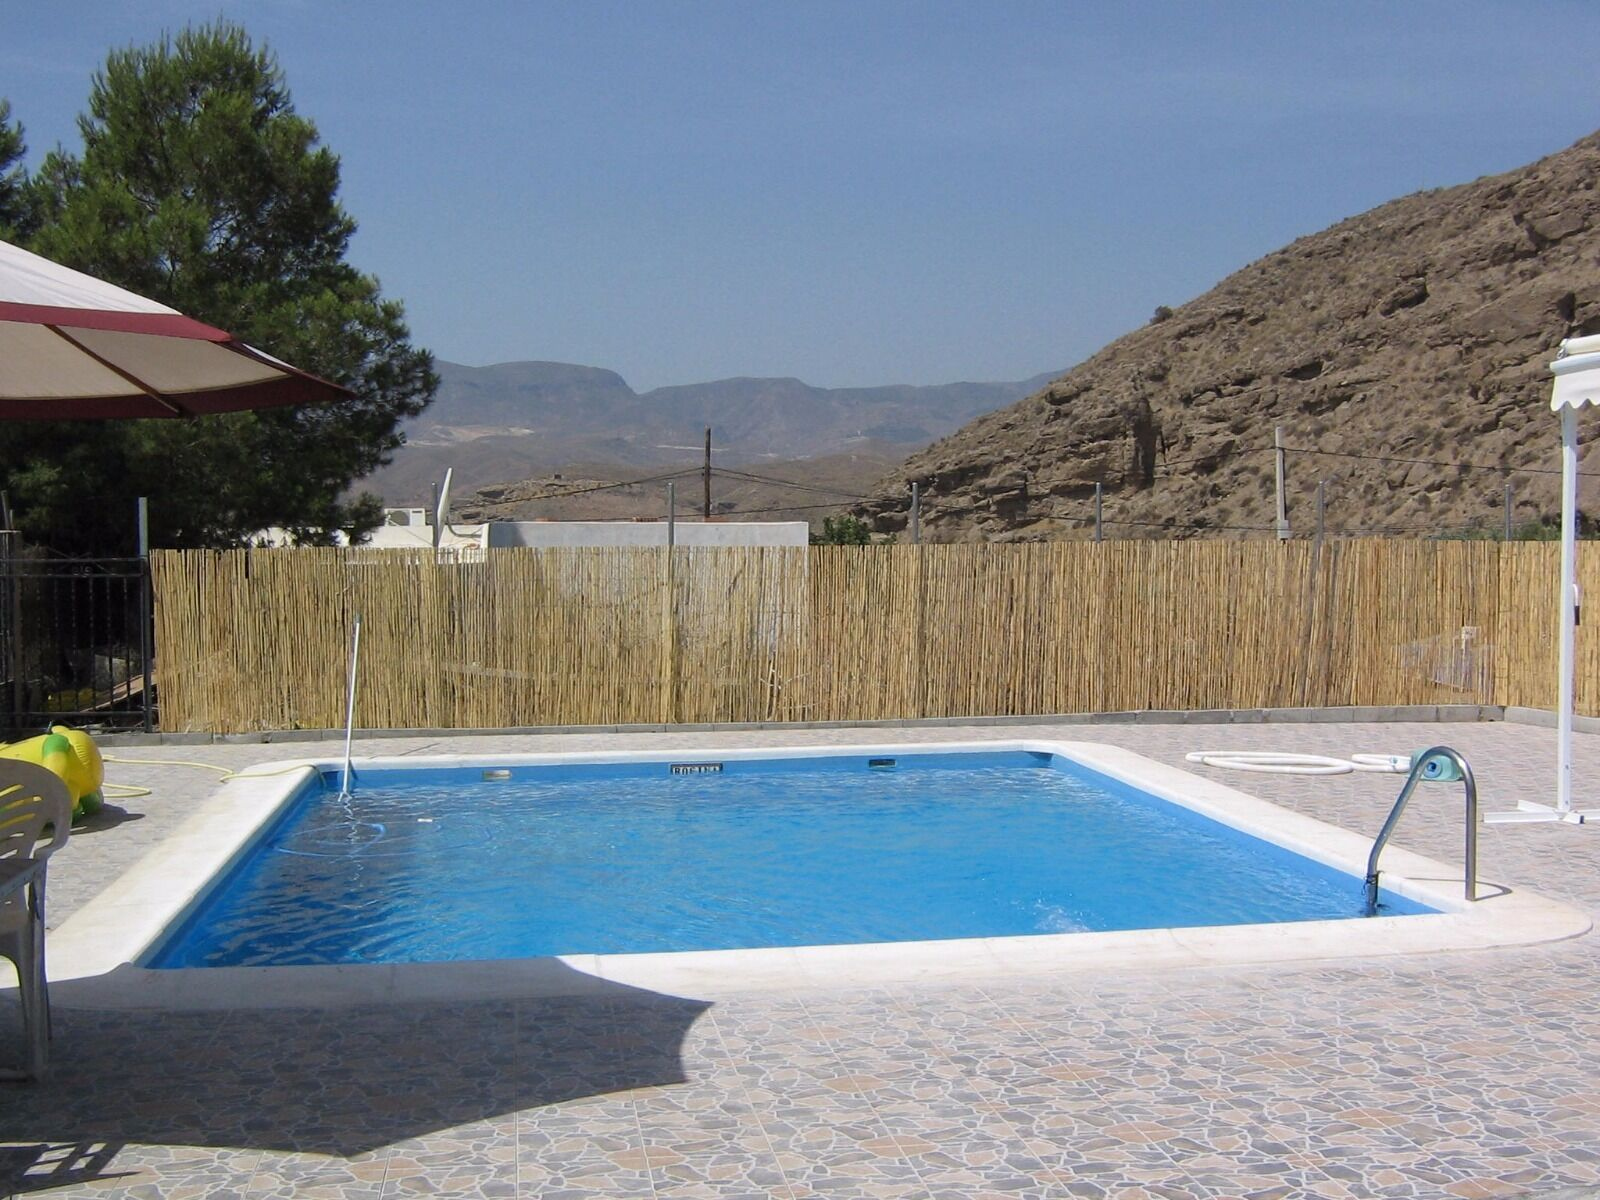 4 5 Bed Villa With Swimming Pool In Southern Spain 175 Picclick Uk